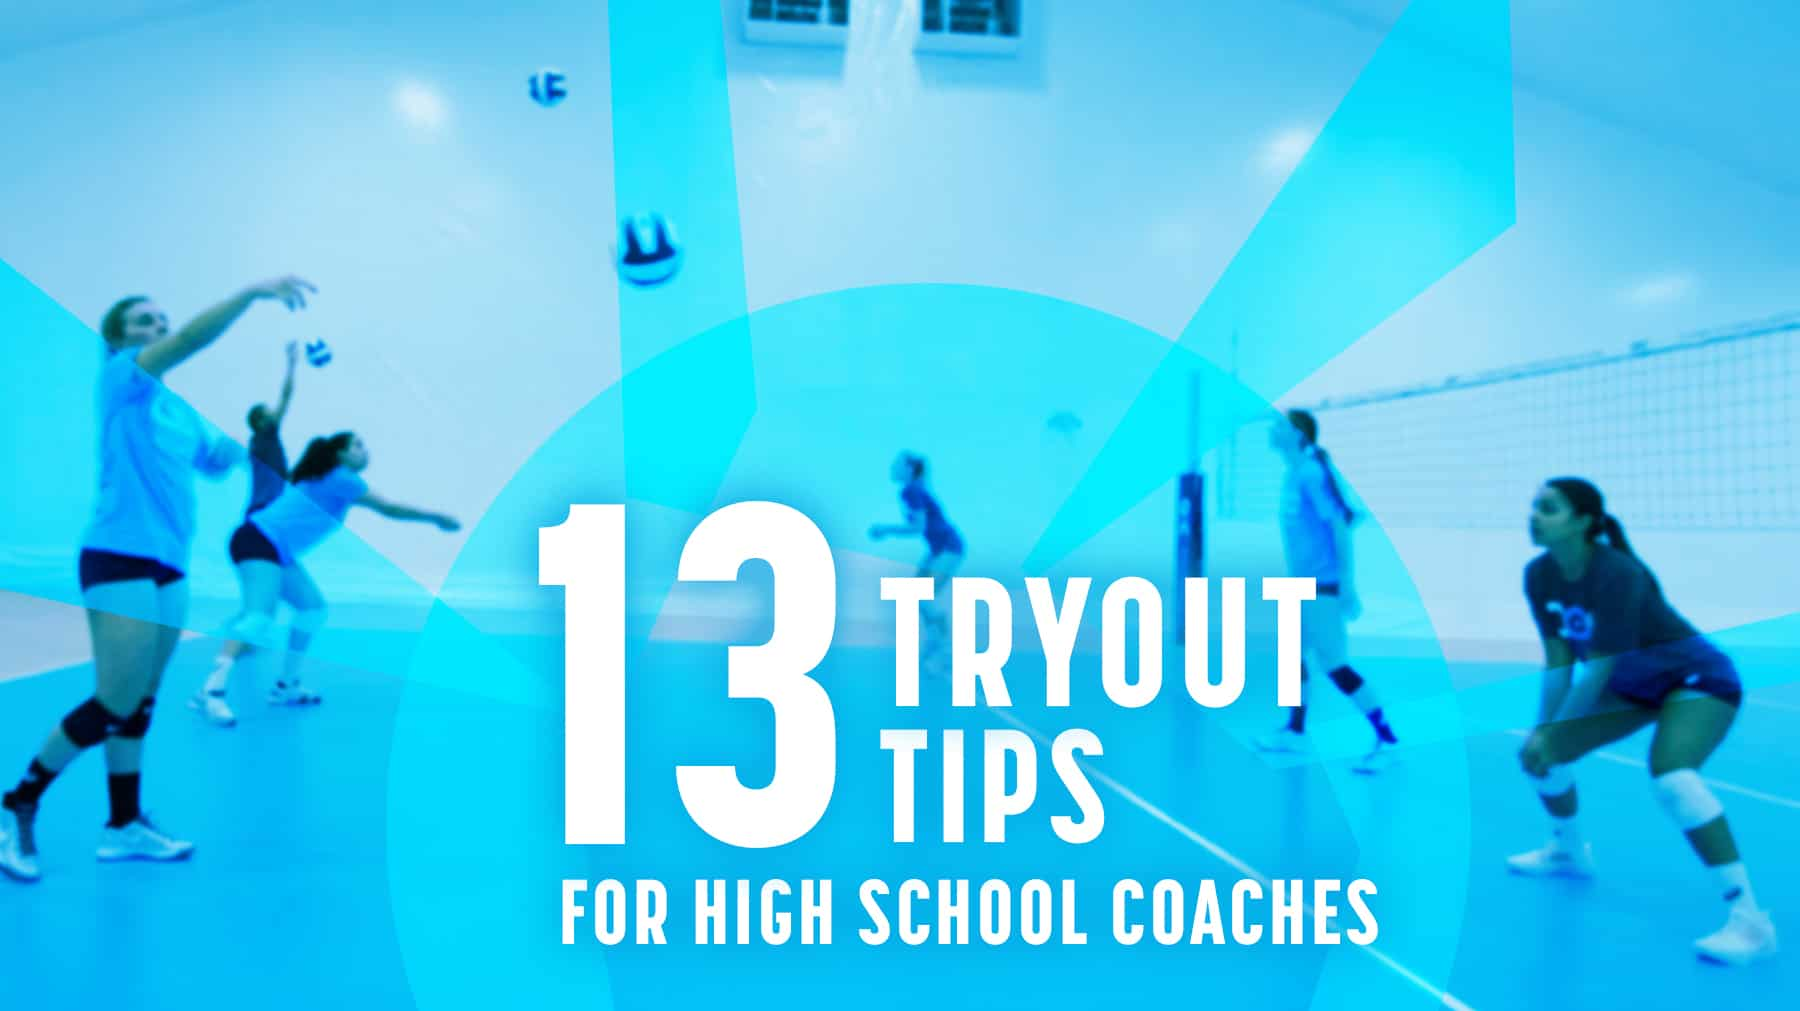 13 tryout tips for high school volleyball coaches